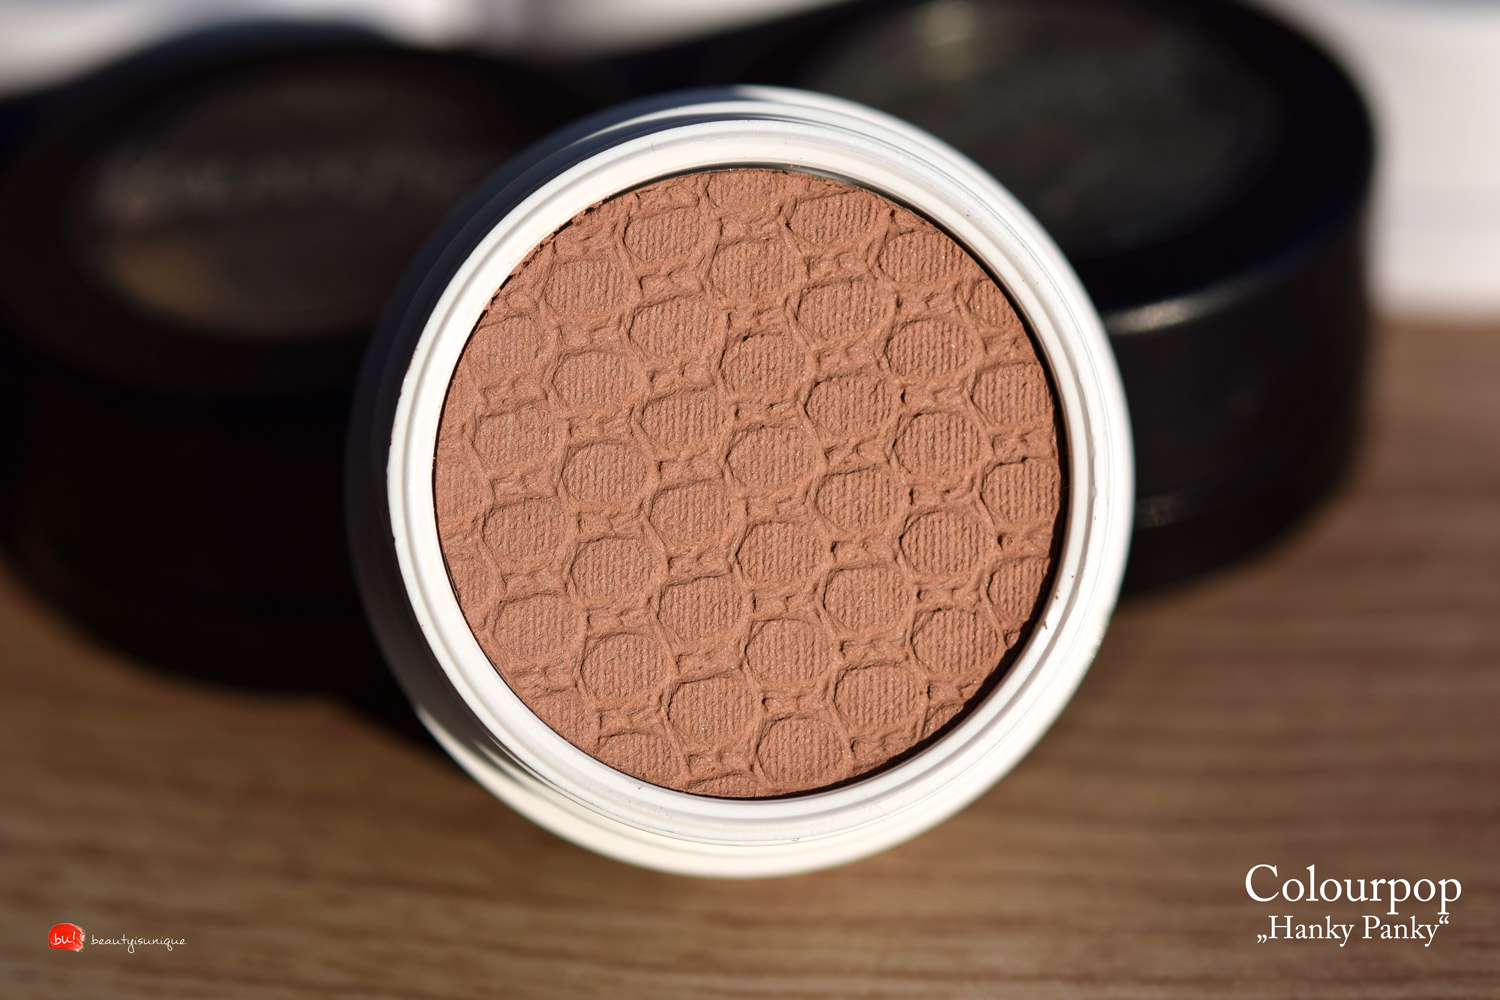 Colourpop-hanky-panky-swatch